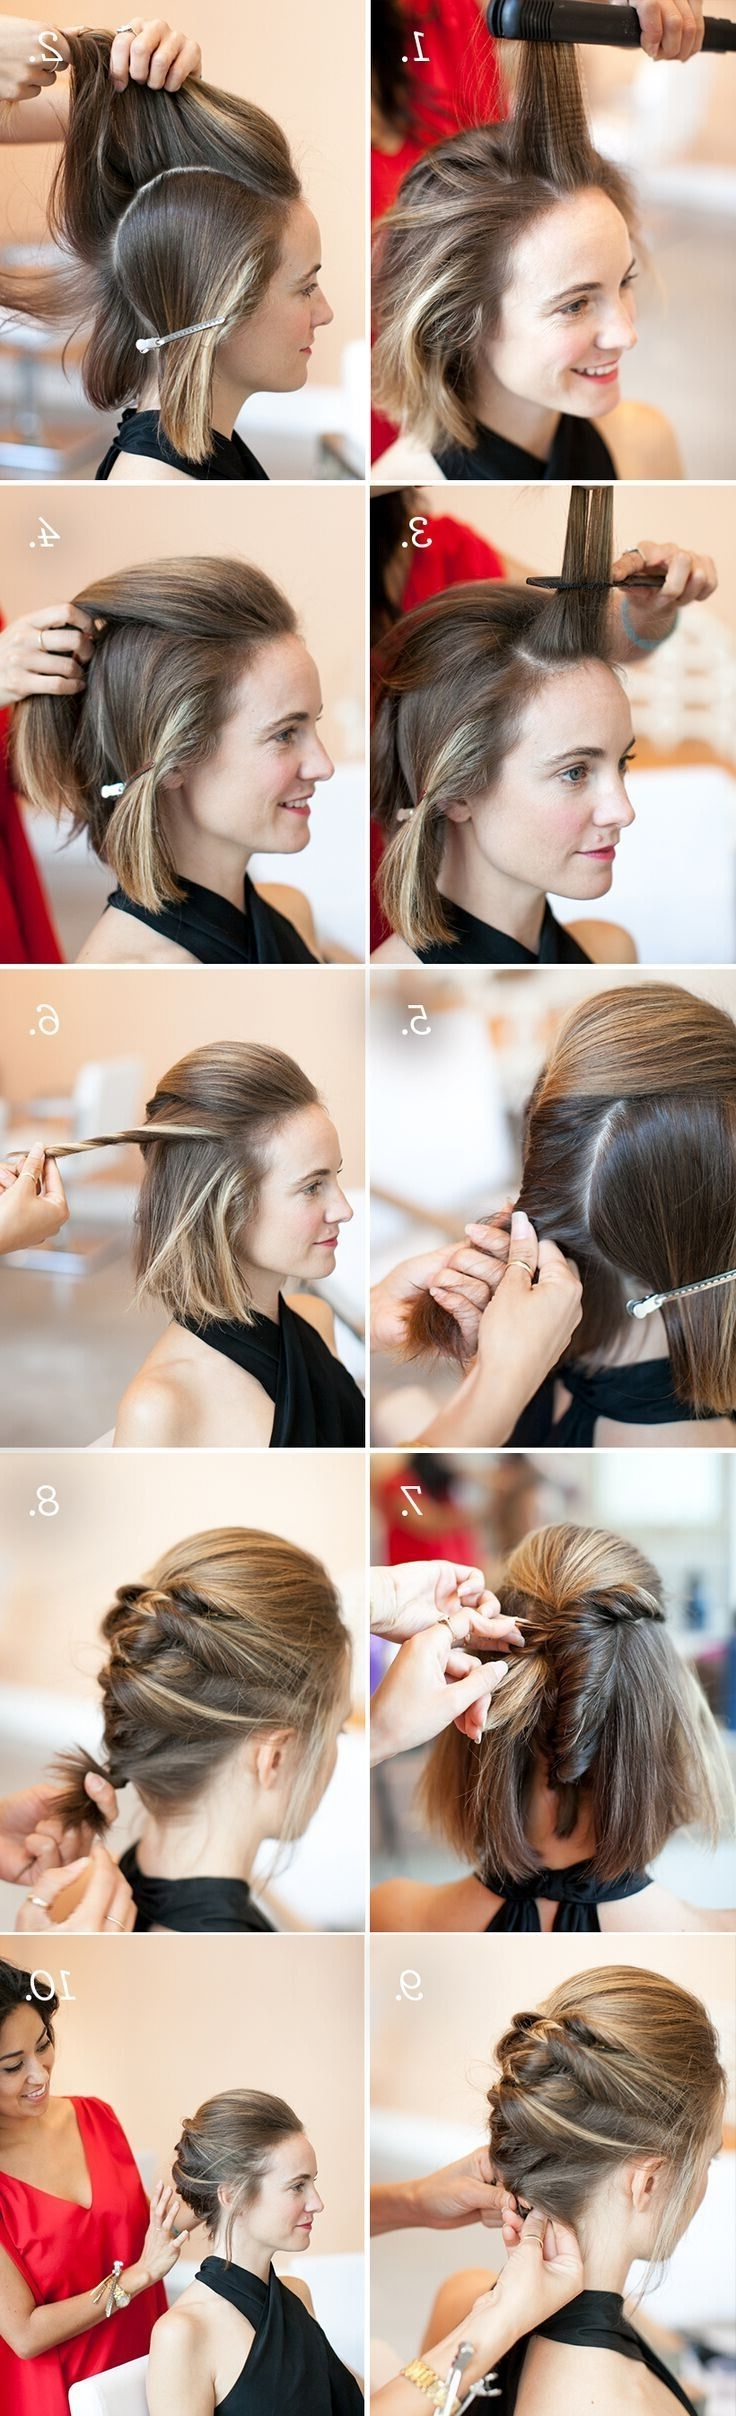 20 Exciting New Intricate Braid Updo Hairstyles – Popular Haircuts Regarding Cute And Easy Updo Hairstyles For Short Hair (View 10 of 15)